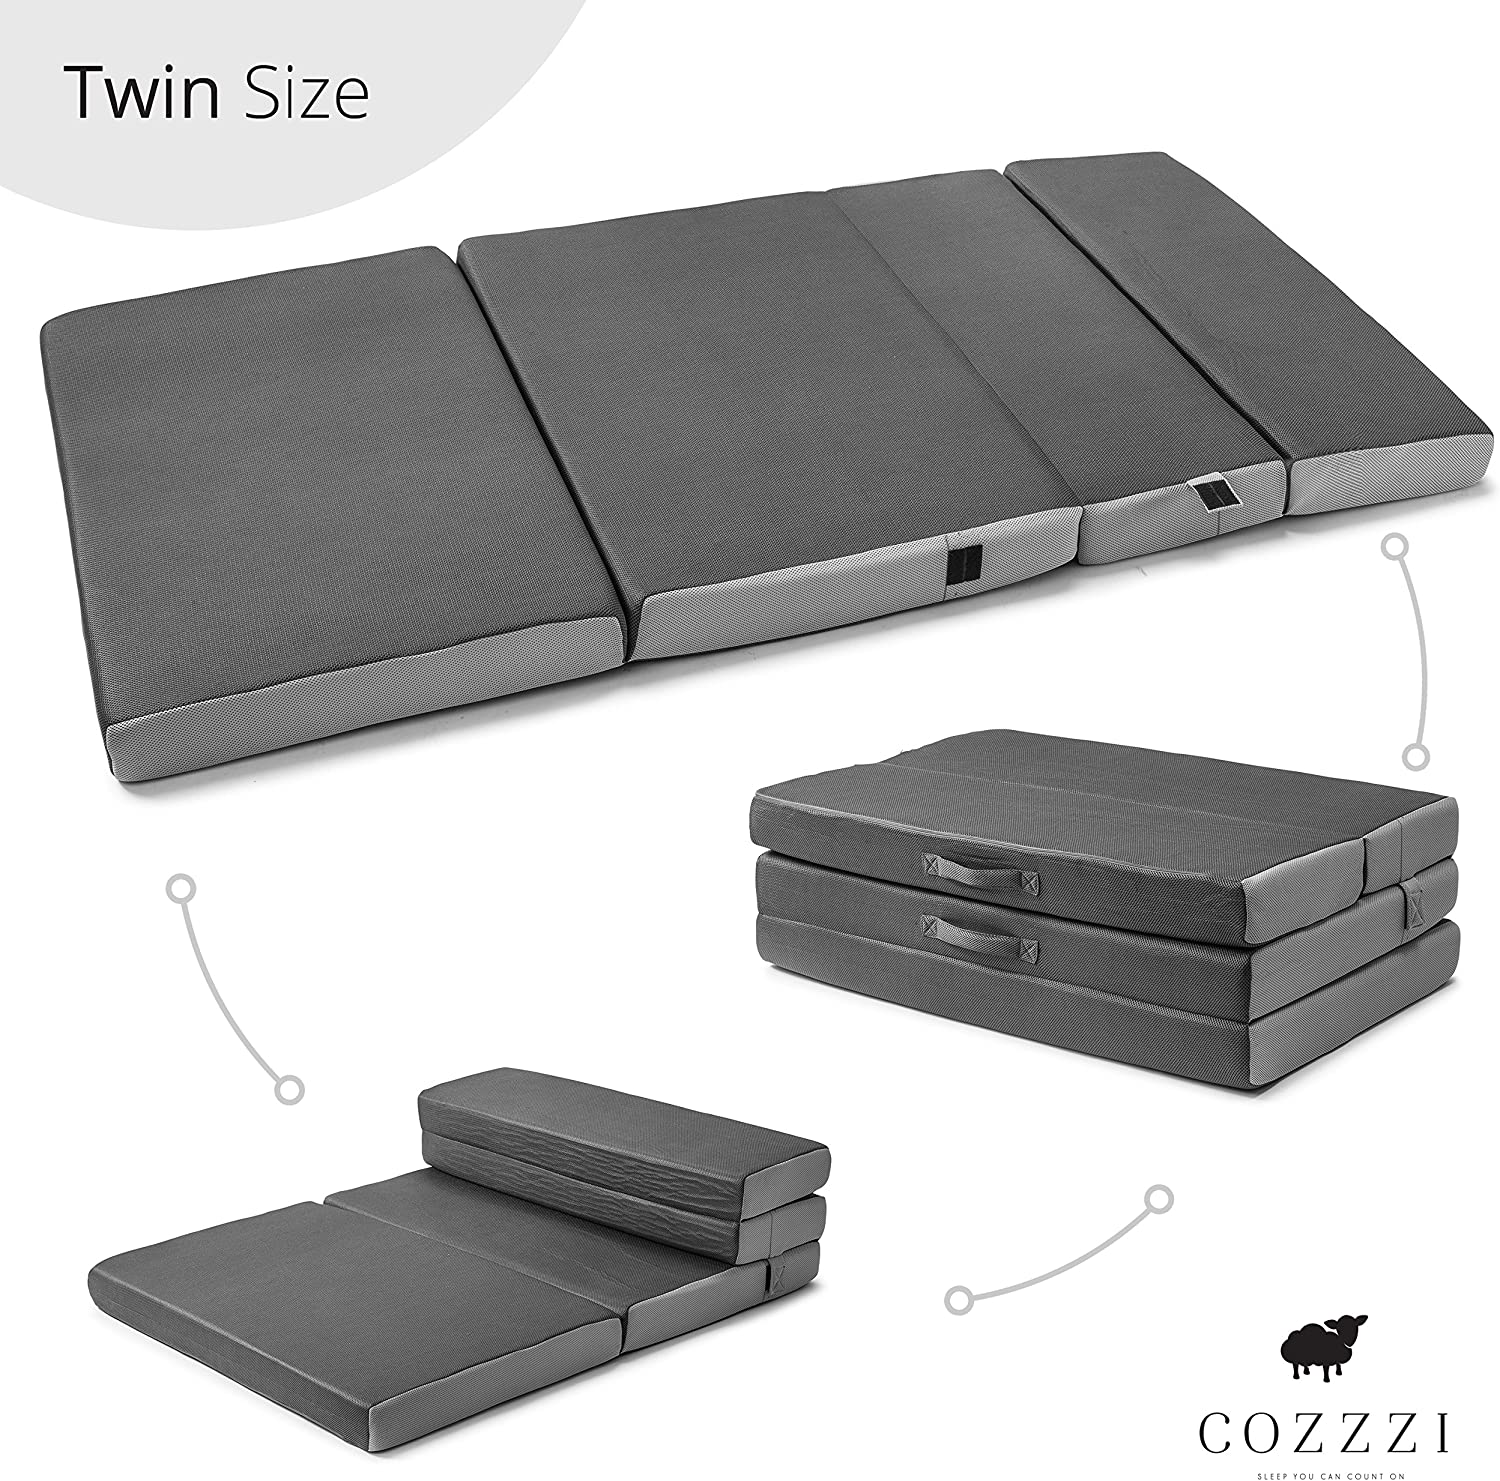 Cozzzi Twin Folding Mattress 4 Thick x 75 x 39 – Trifold Foam Mat with Carrying Handles and Removable Washable Cover Lightweight, Portable, Easy to Store